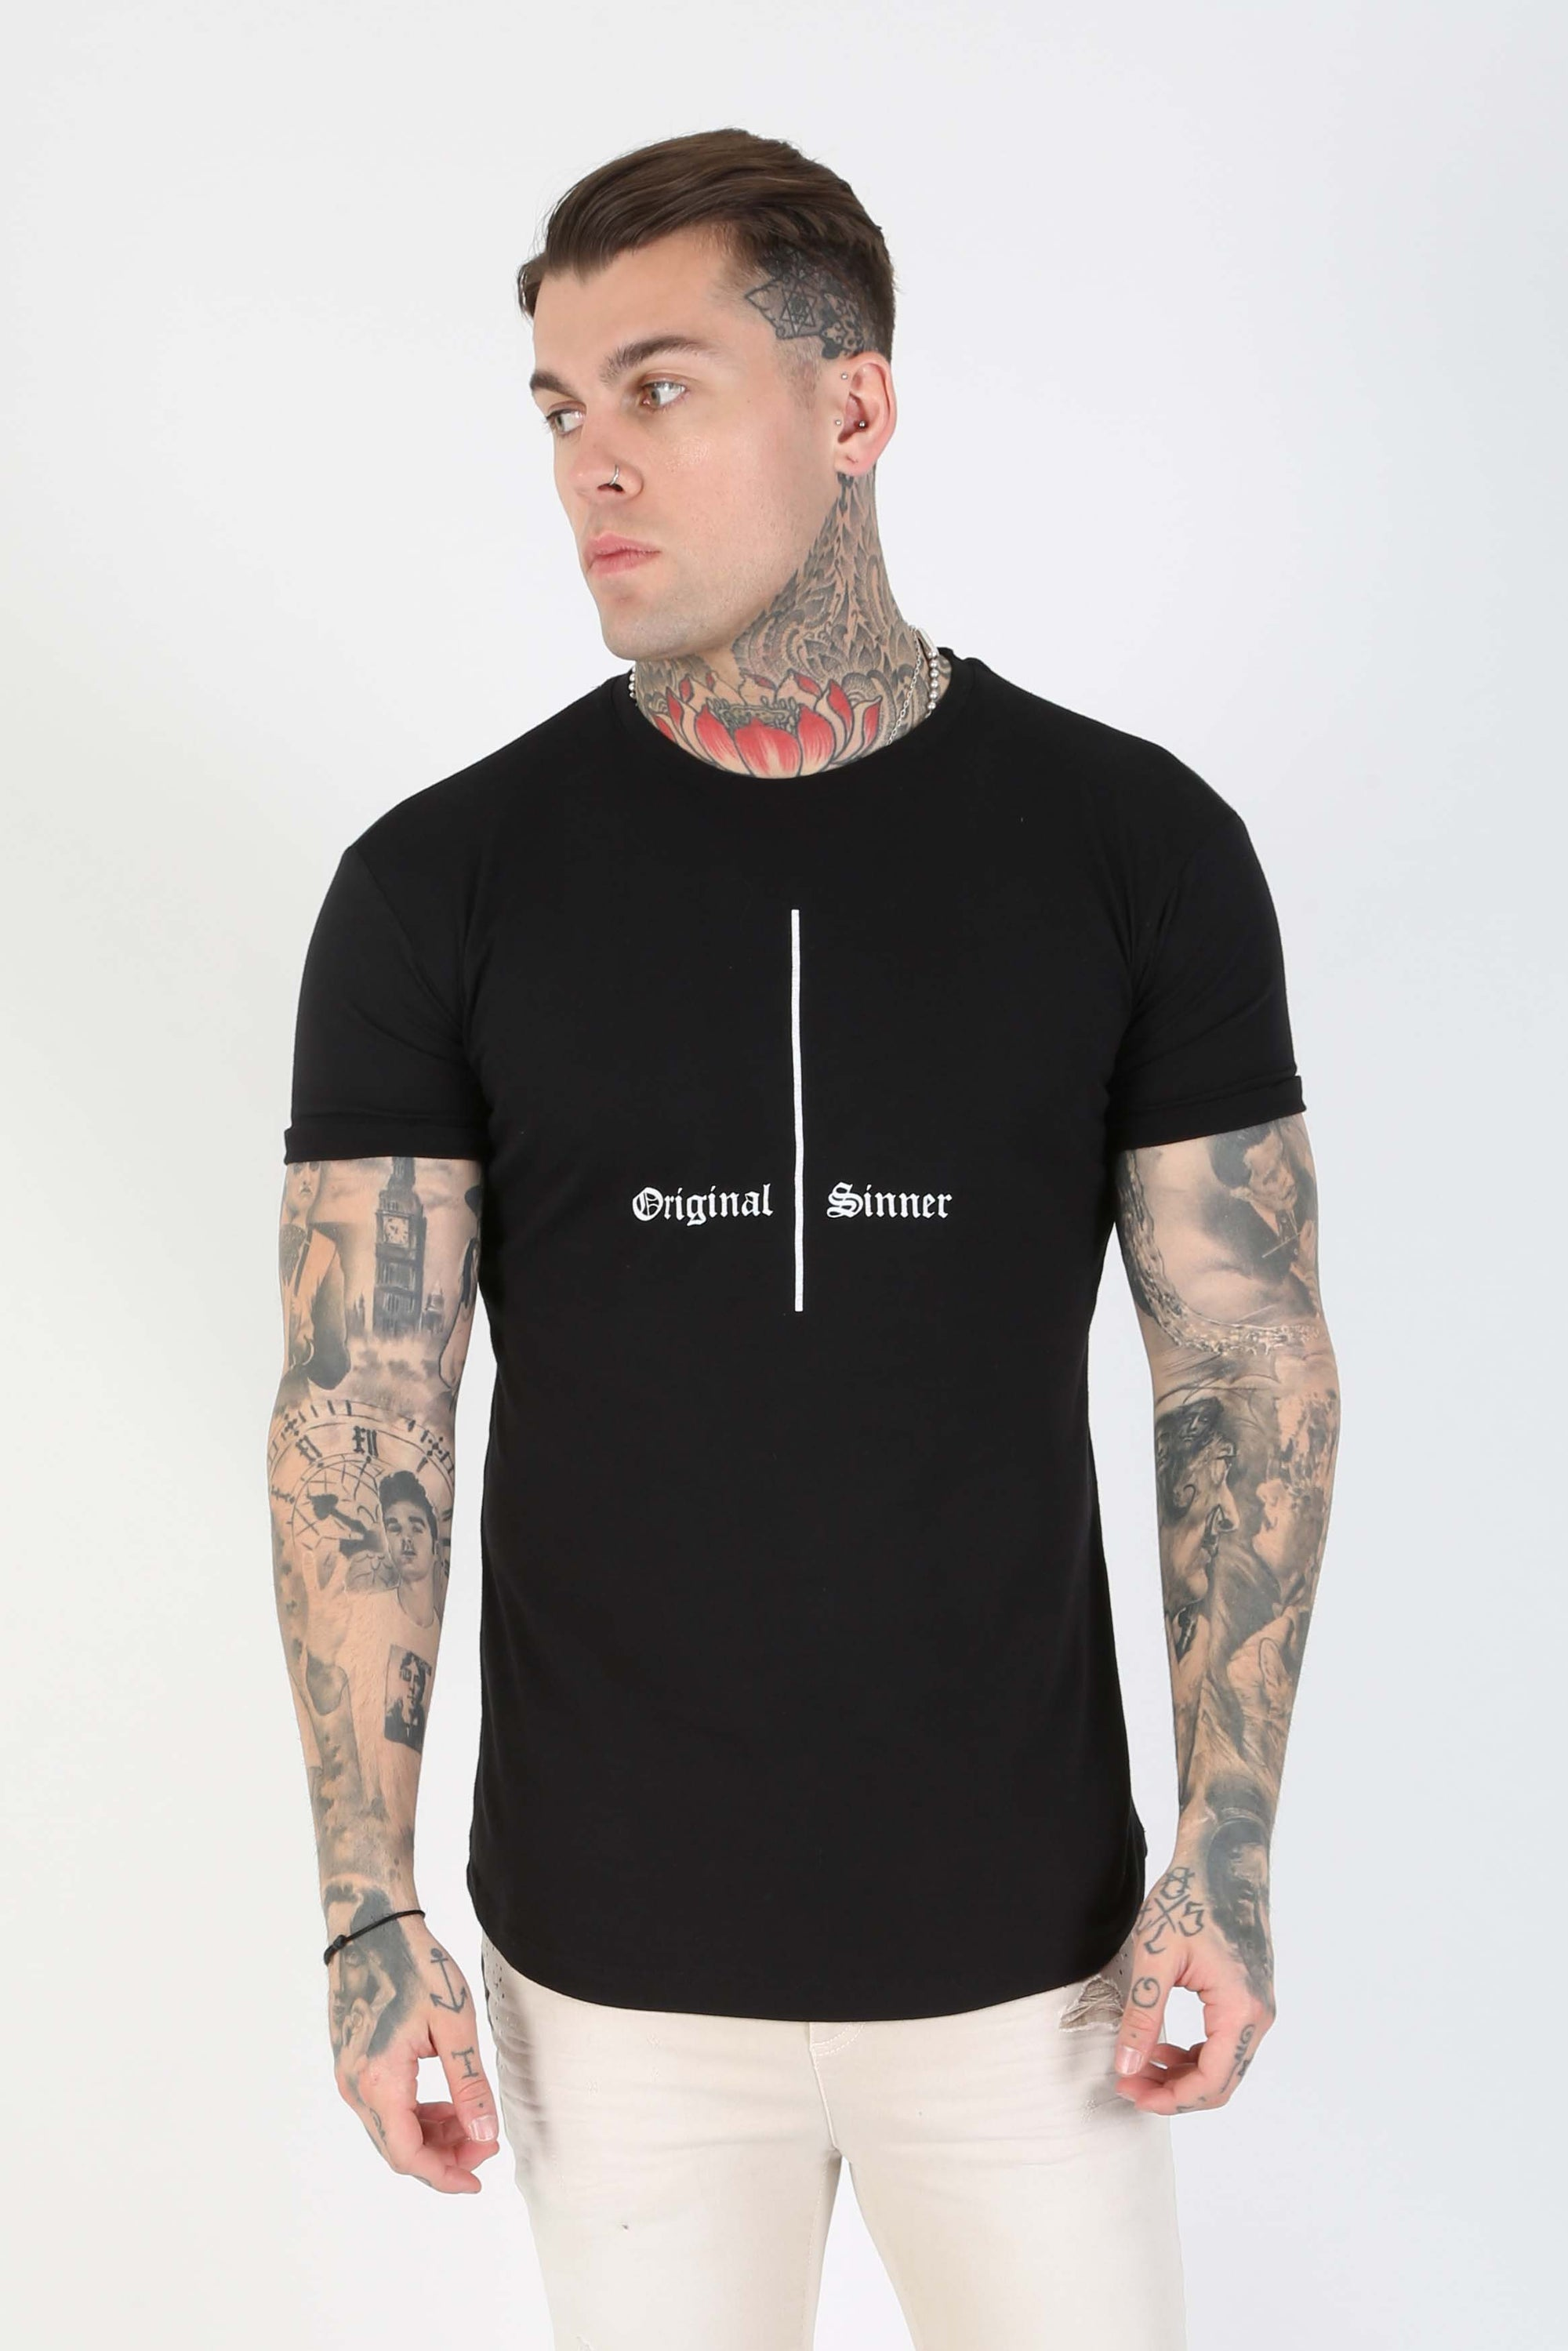 Cruci Print Fitted Men's T-Shirt - Black - Judas Sinned Clothing